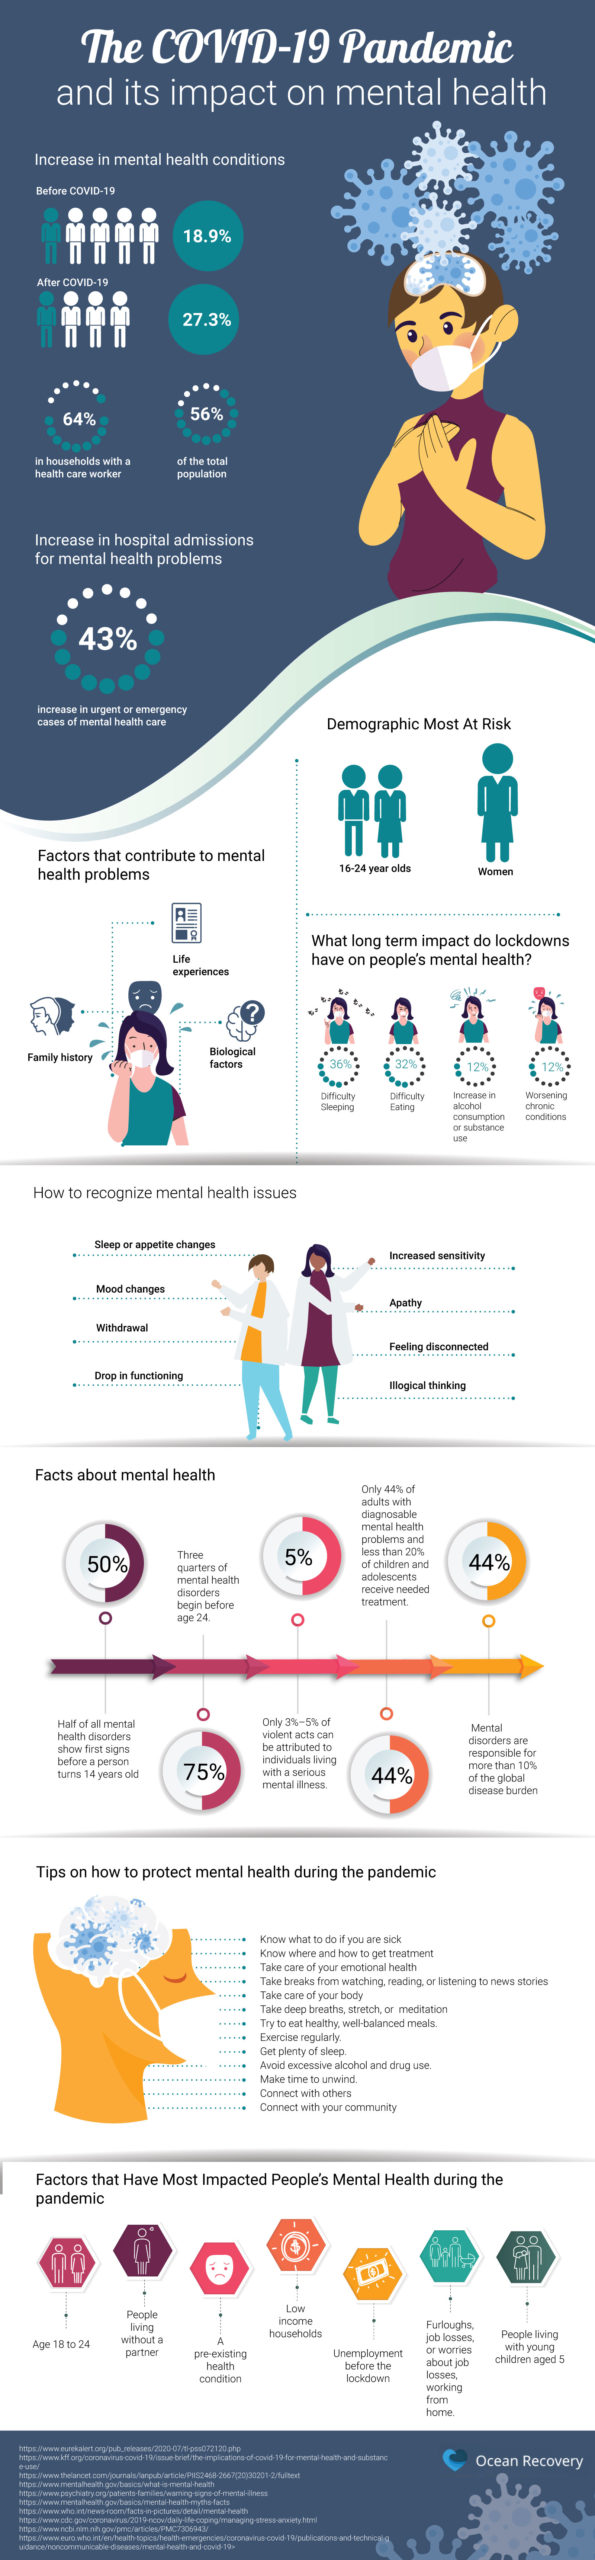 The COVID-19 Pandemic & It's Impact On Mental Health #infographic #Health #Mental Health  #Pandemic #COVID-19